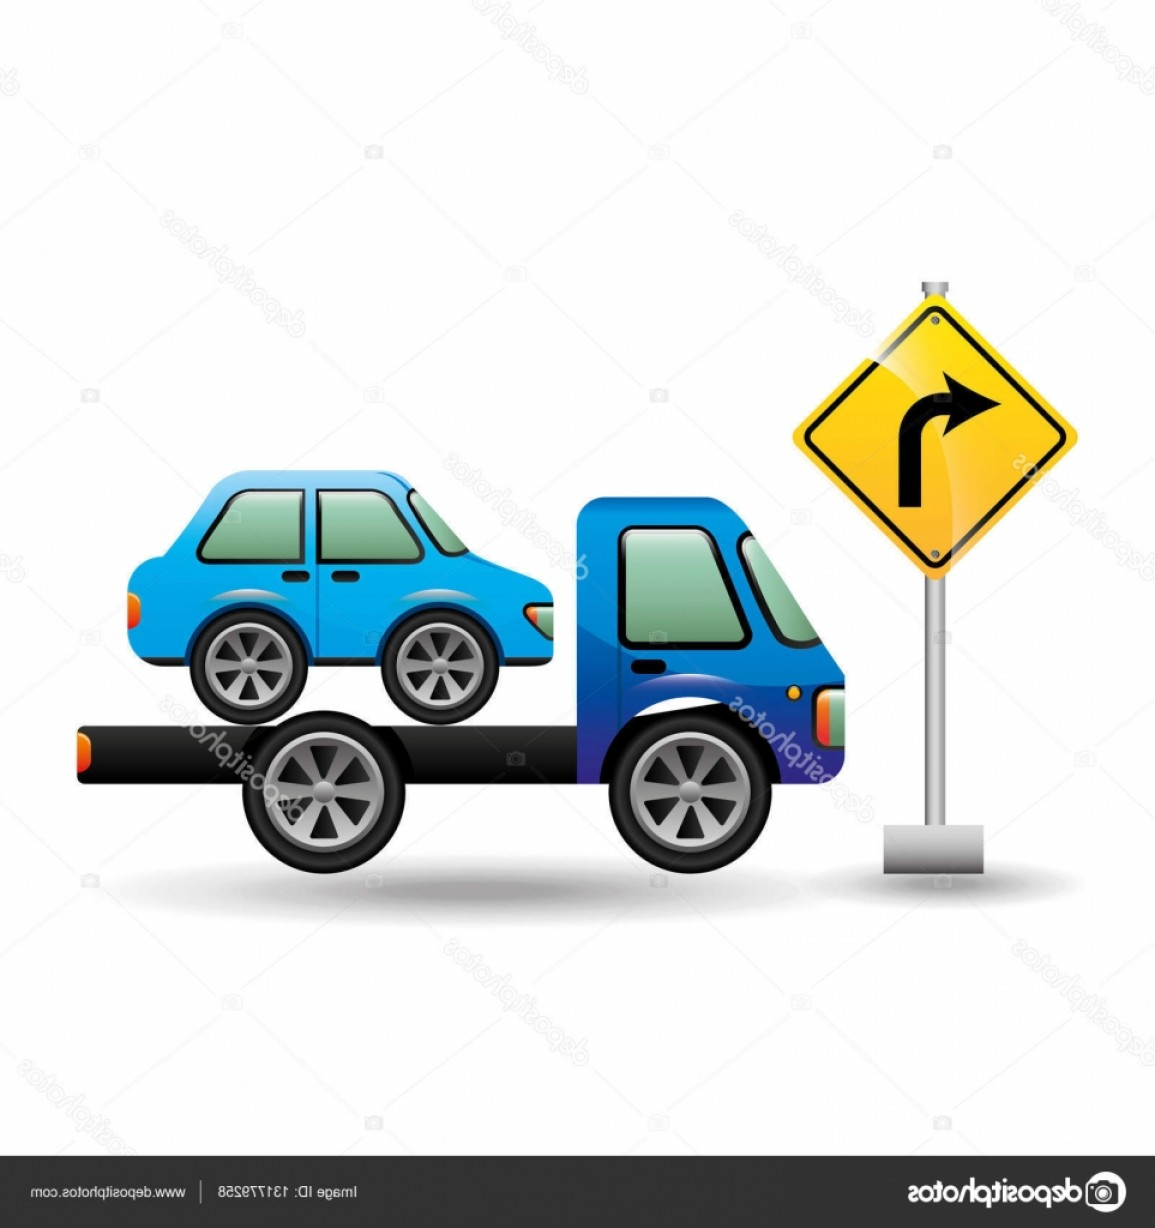 Gruas Truck Vector: Stock Illustration Truck Crane And Car With